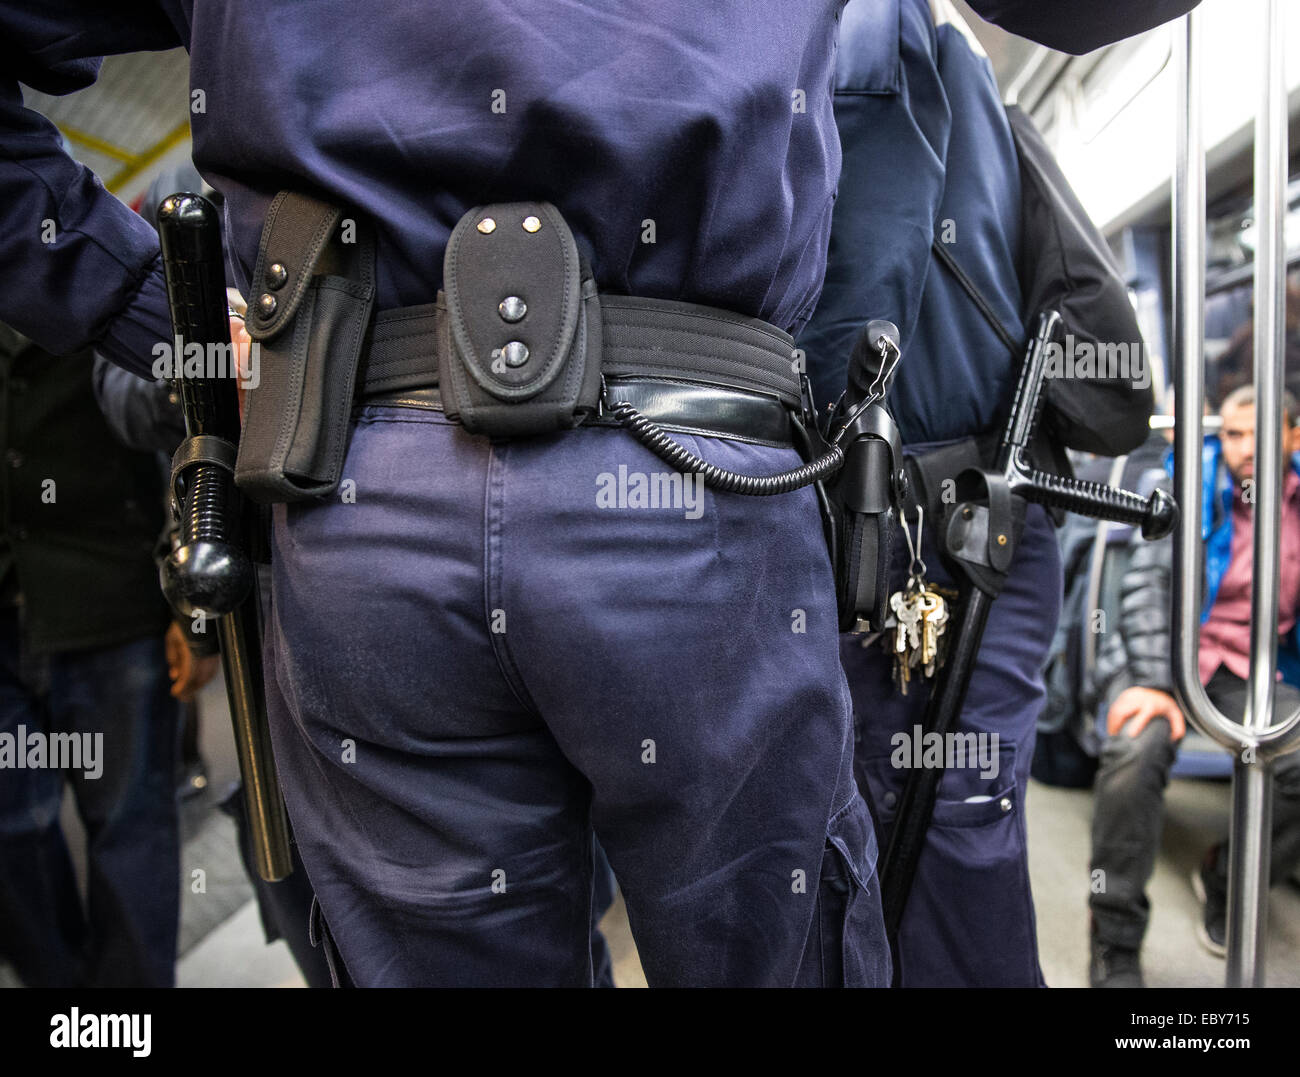 transport police train metro carriage baton gun - Stock Image